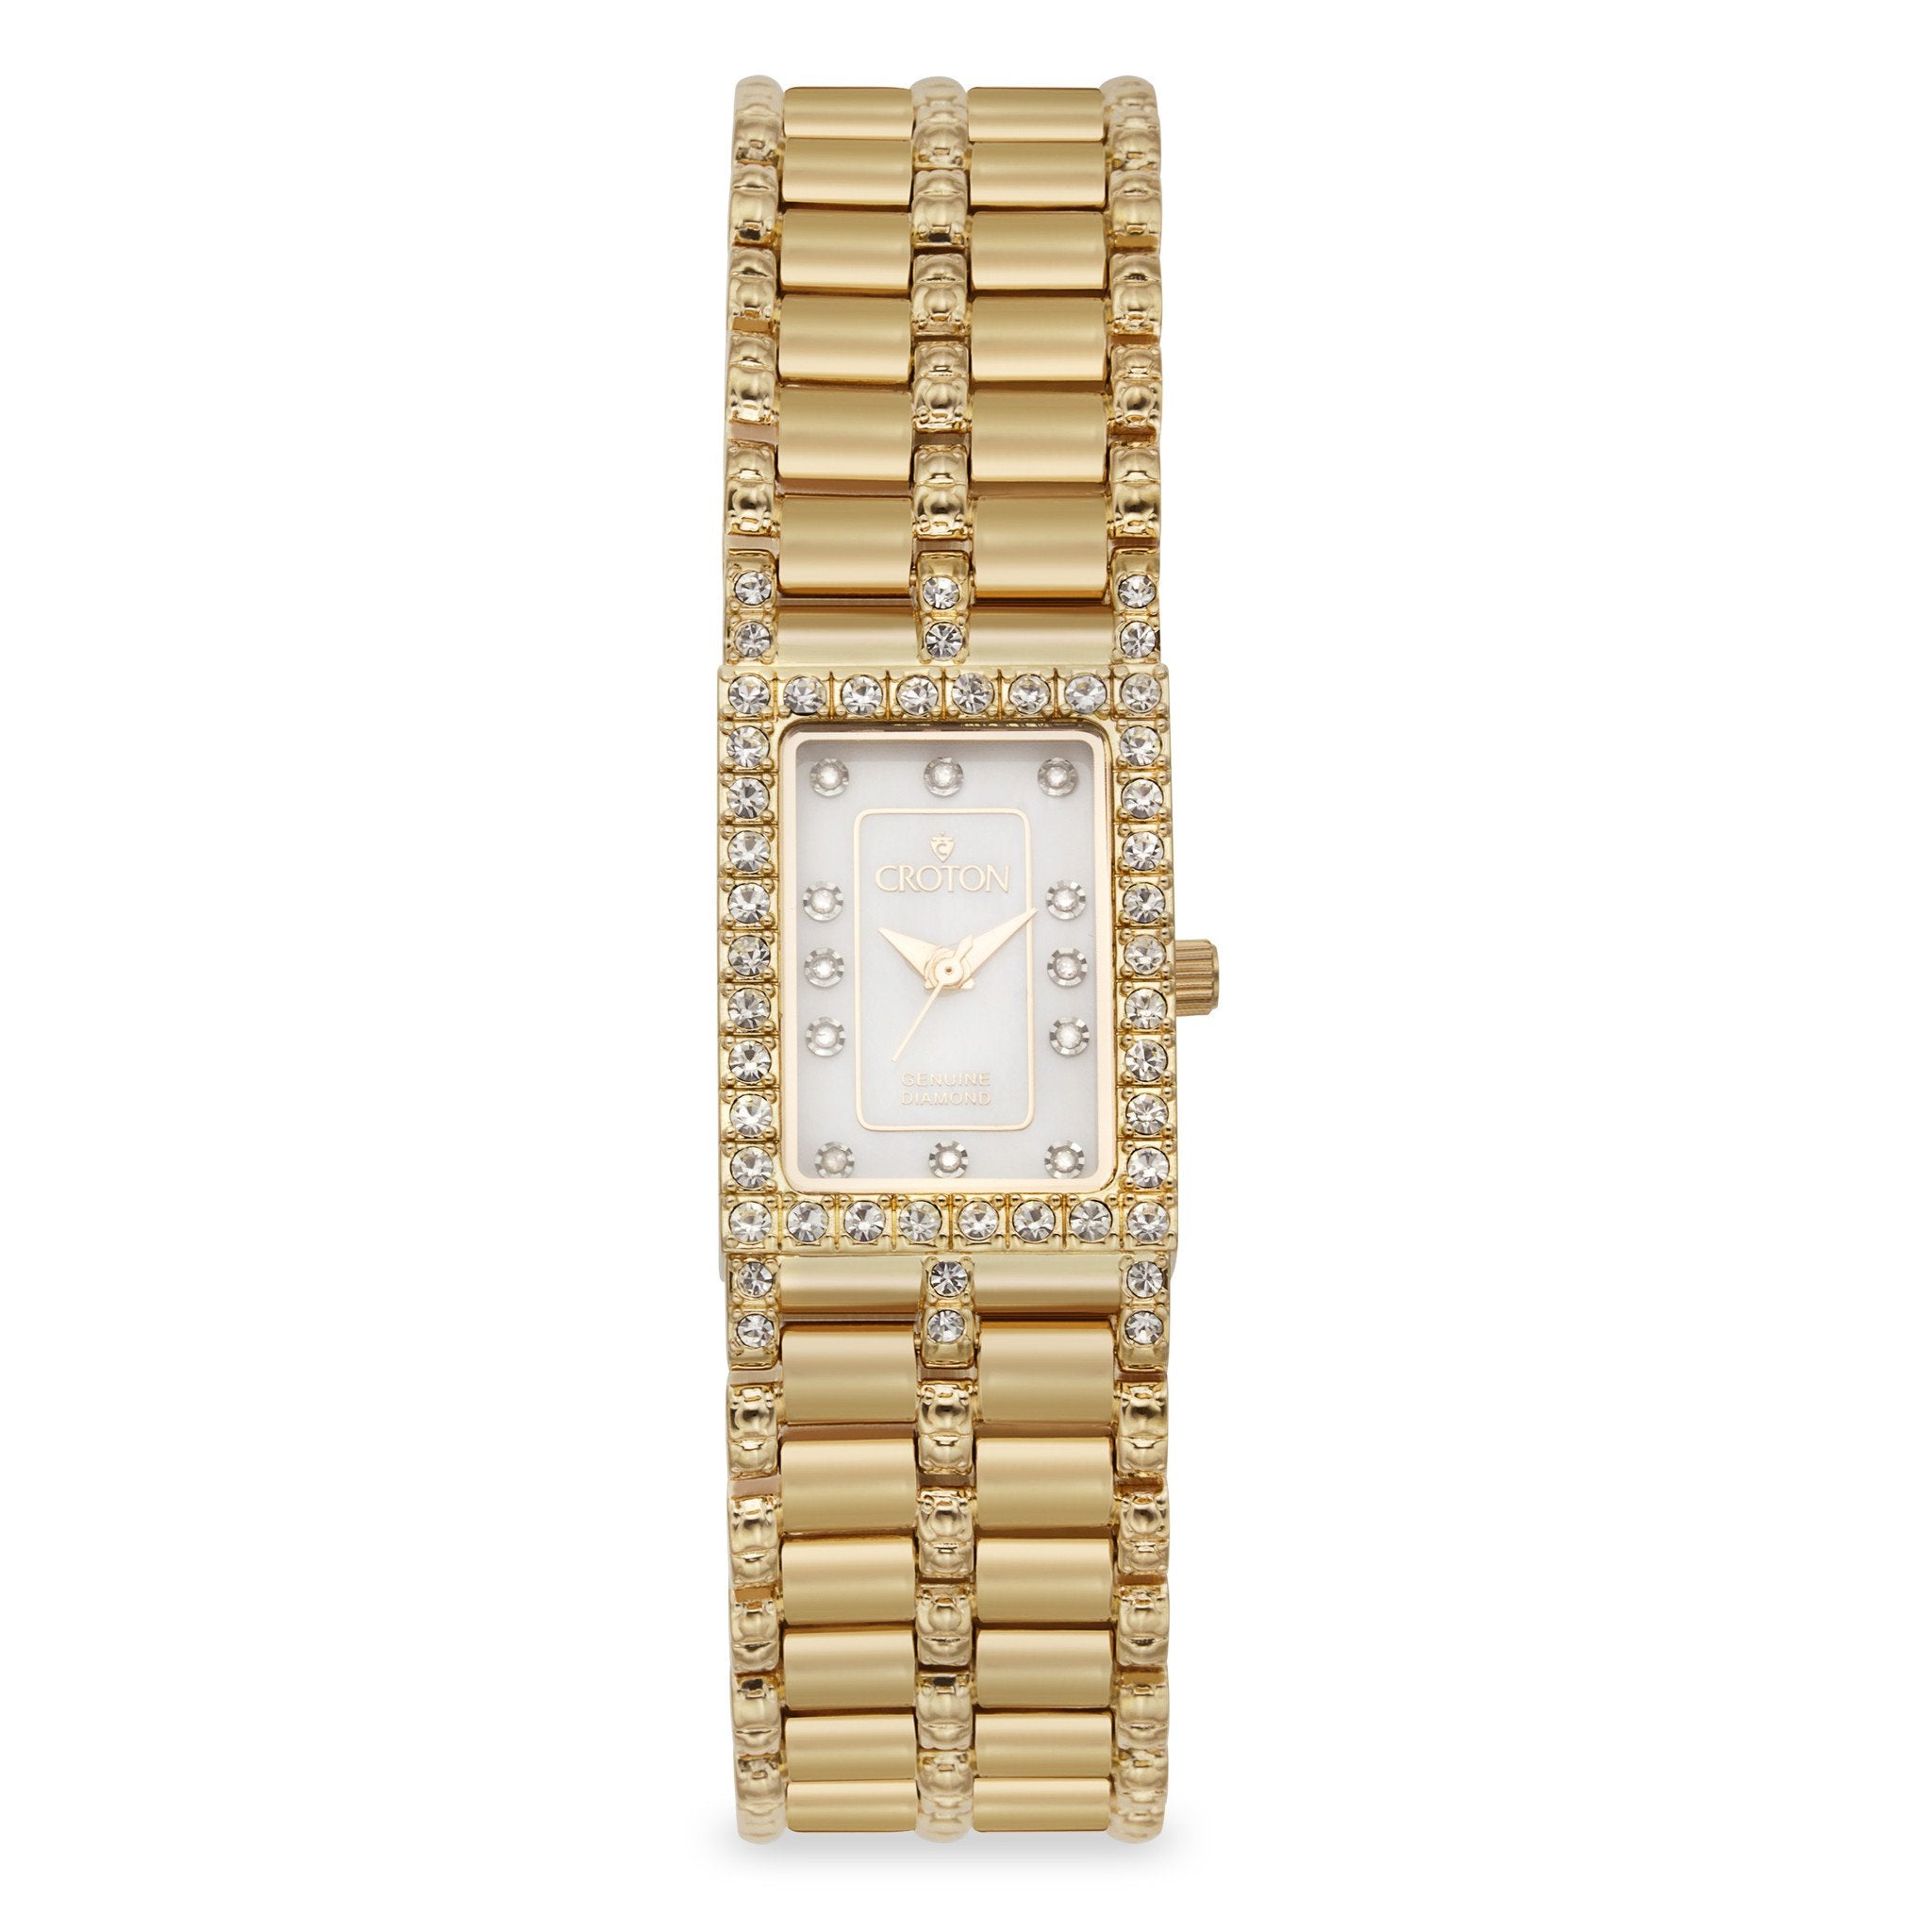 crystal gold stainless diamond women product watch with rose brand female steel waterproof watches fashion bracelet silver clock wristwatches lady